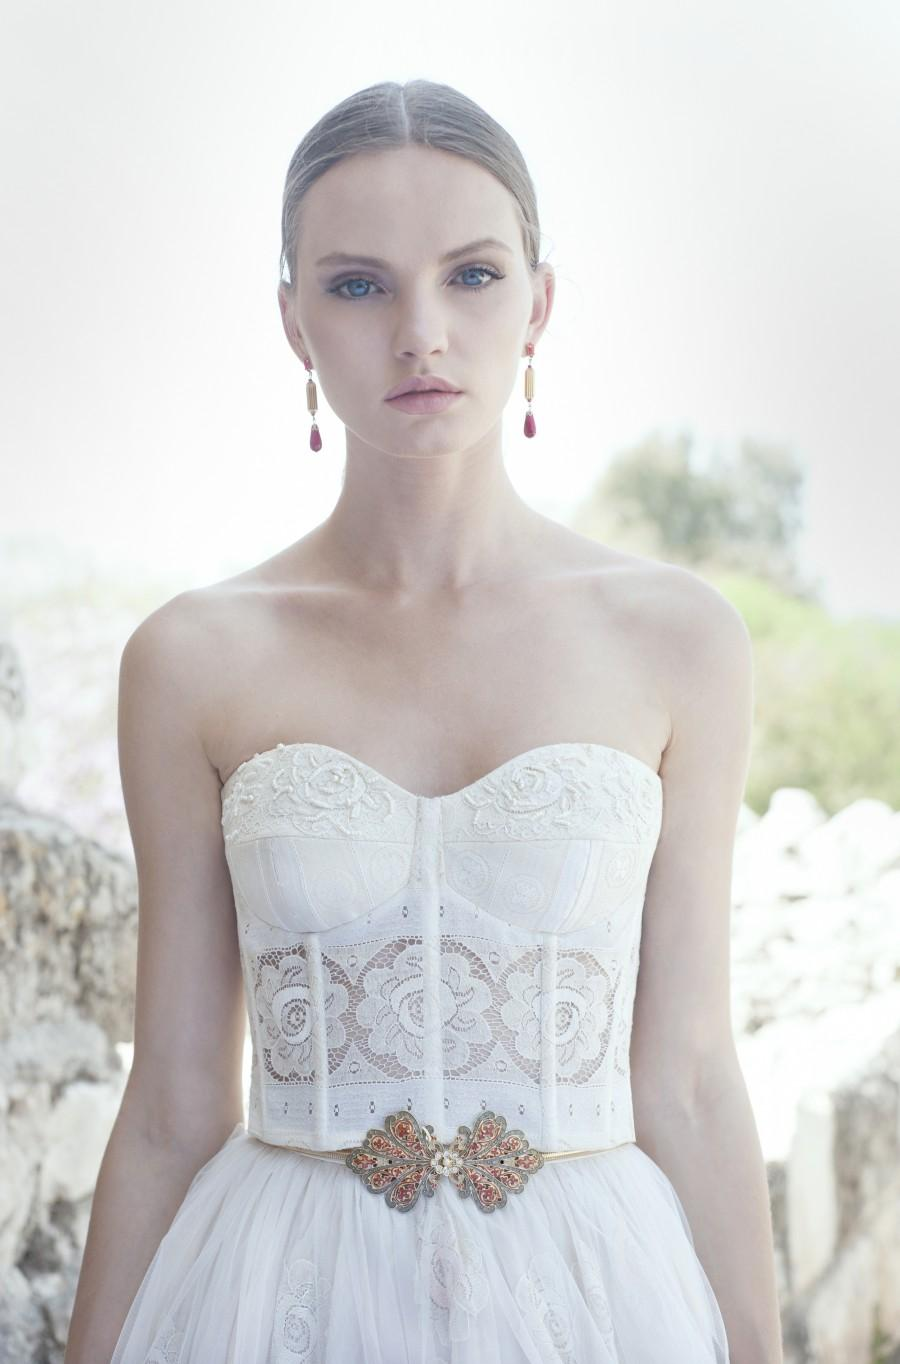 Boda - Marina Valery wedding collection Fairy Tale